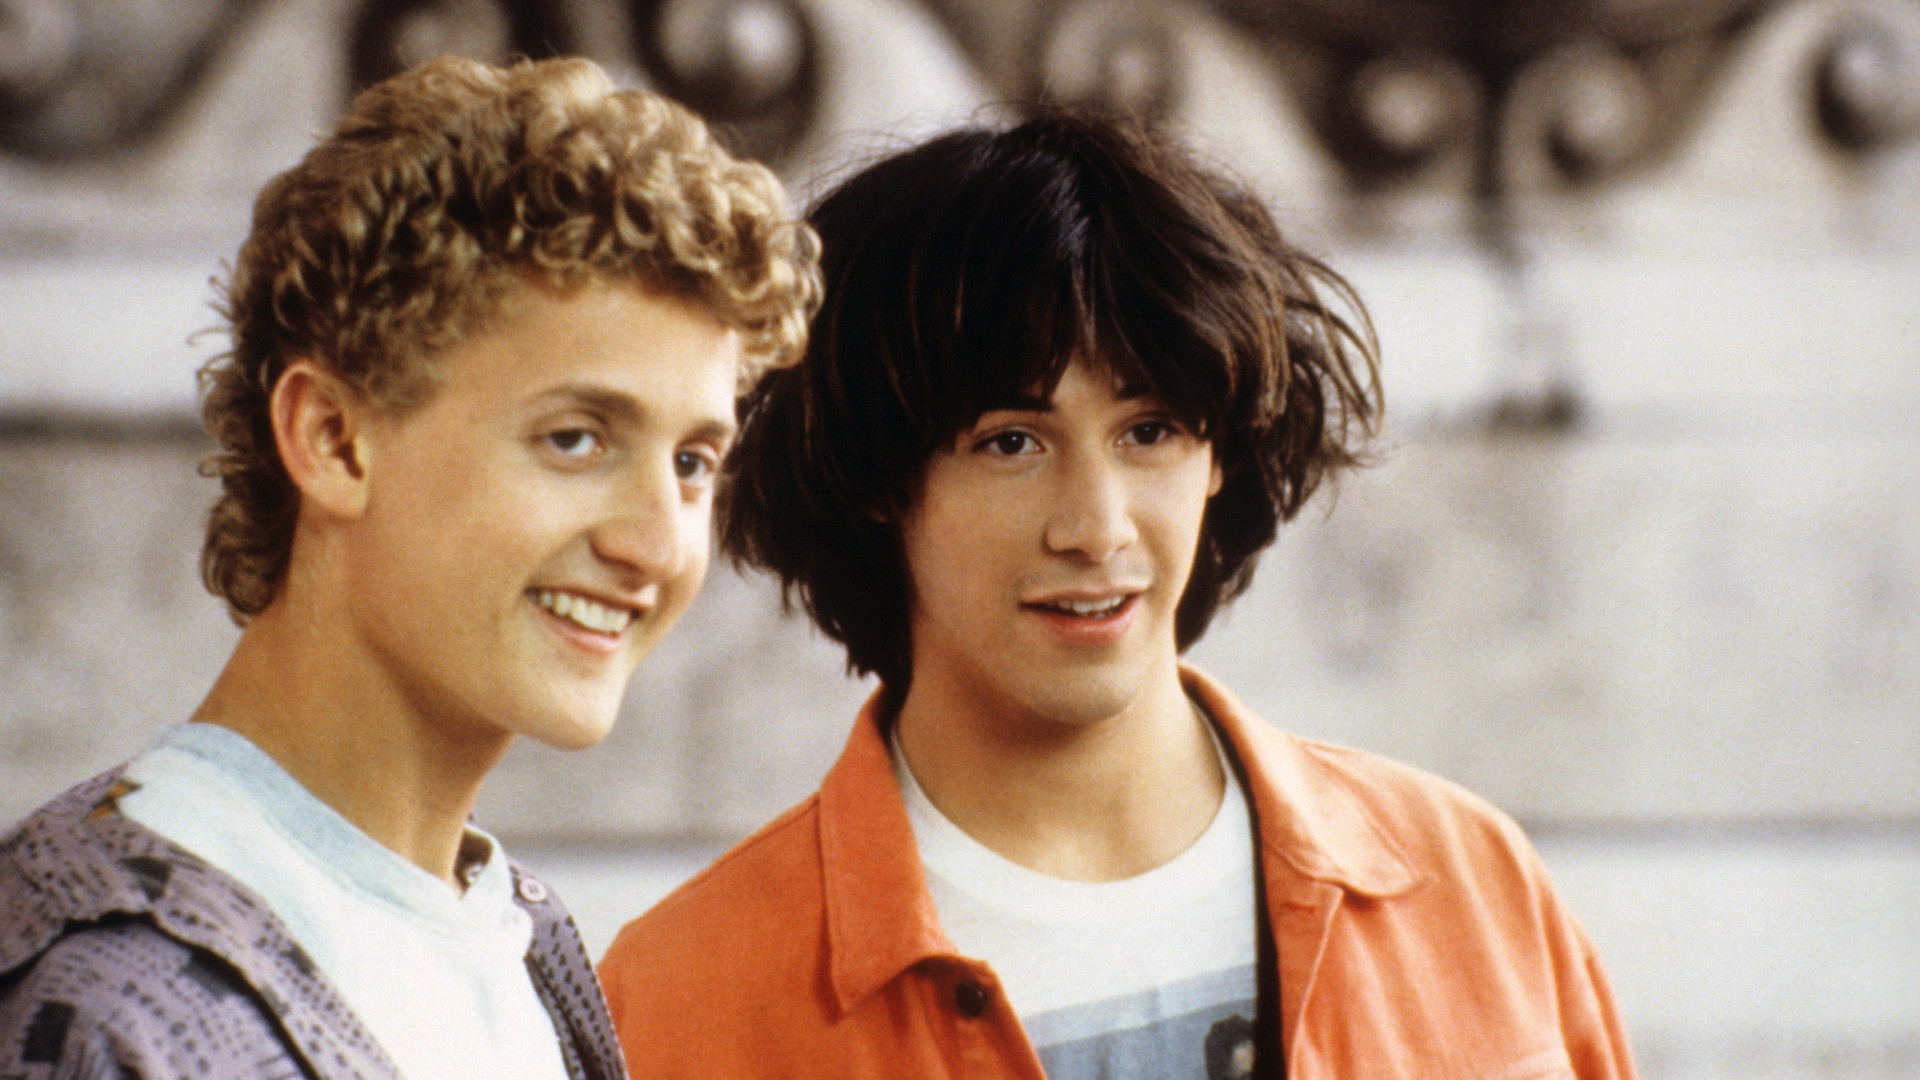 1920x1080 > Bill & Ted's Excellent Adventure Wallpapers